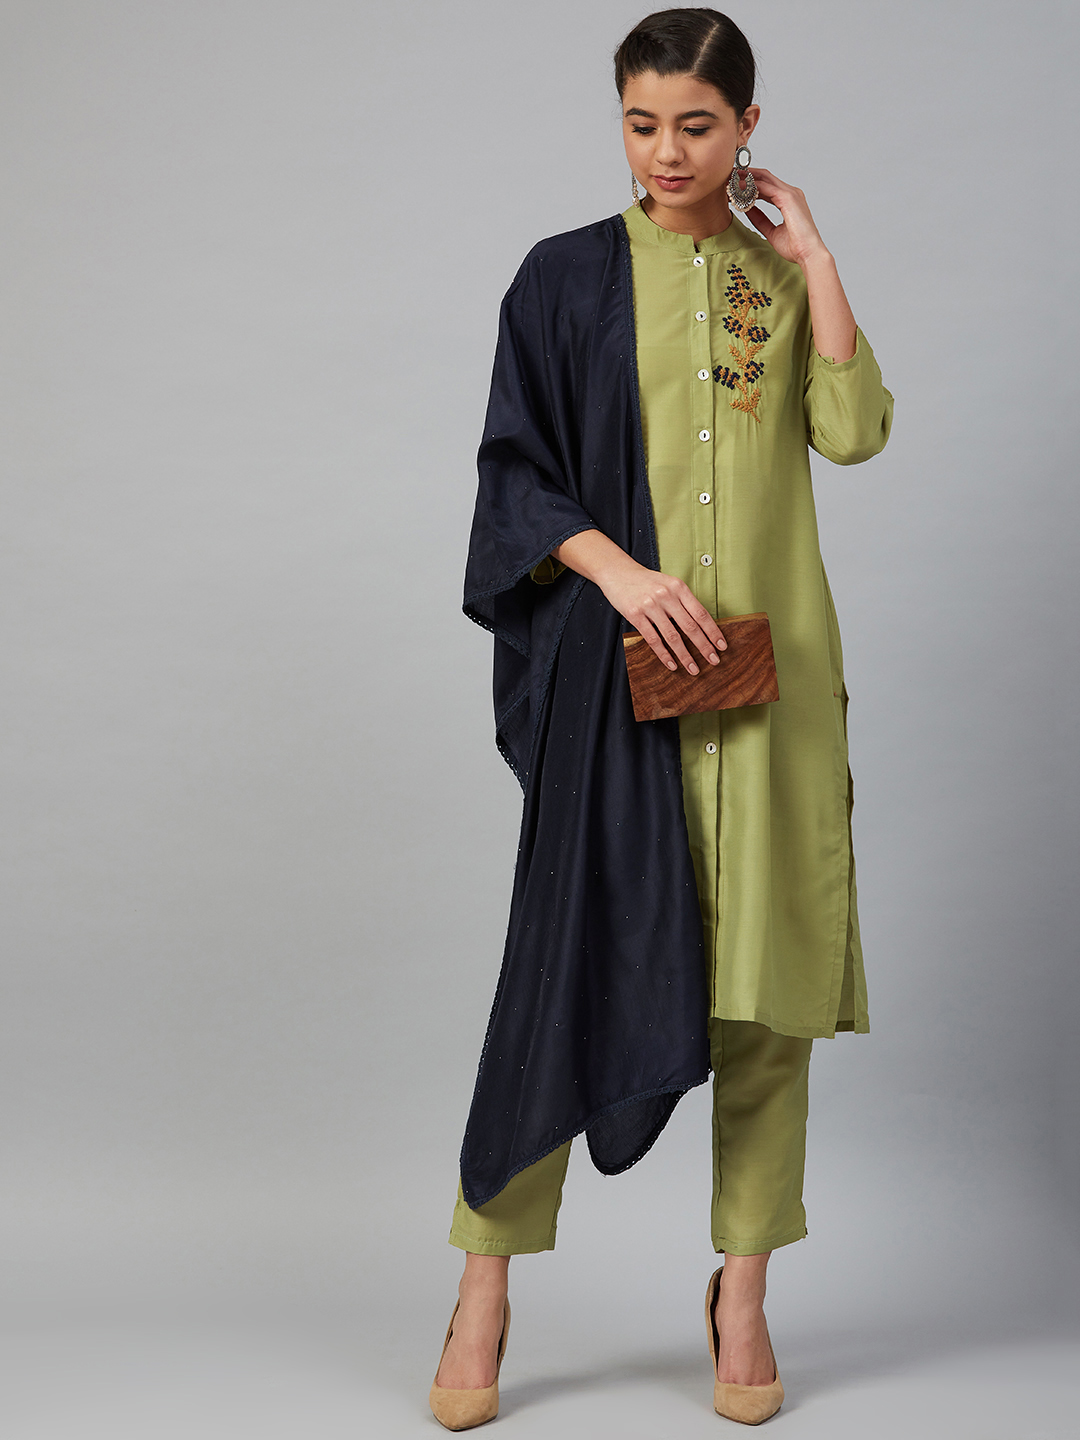 Jompers | Jompers® Women Green Cotton Silk Embroidered Kurta with pants and dupatta  set